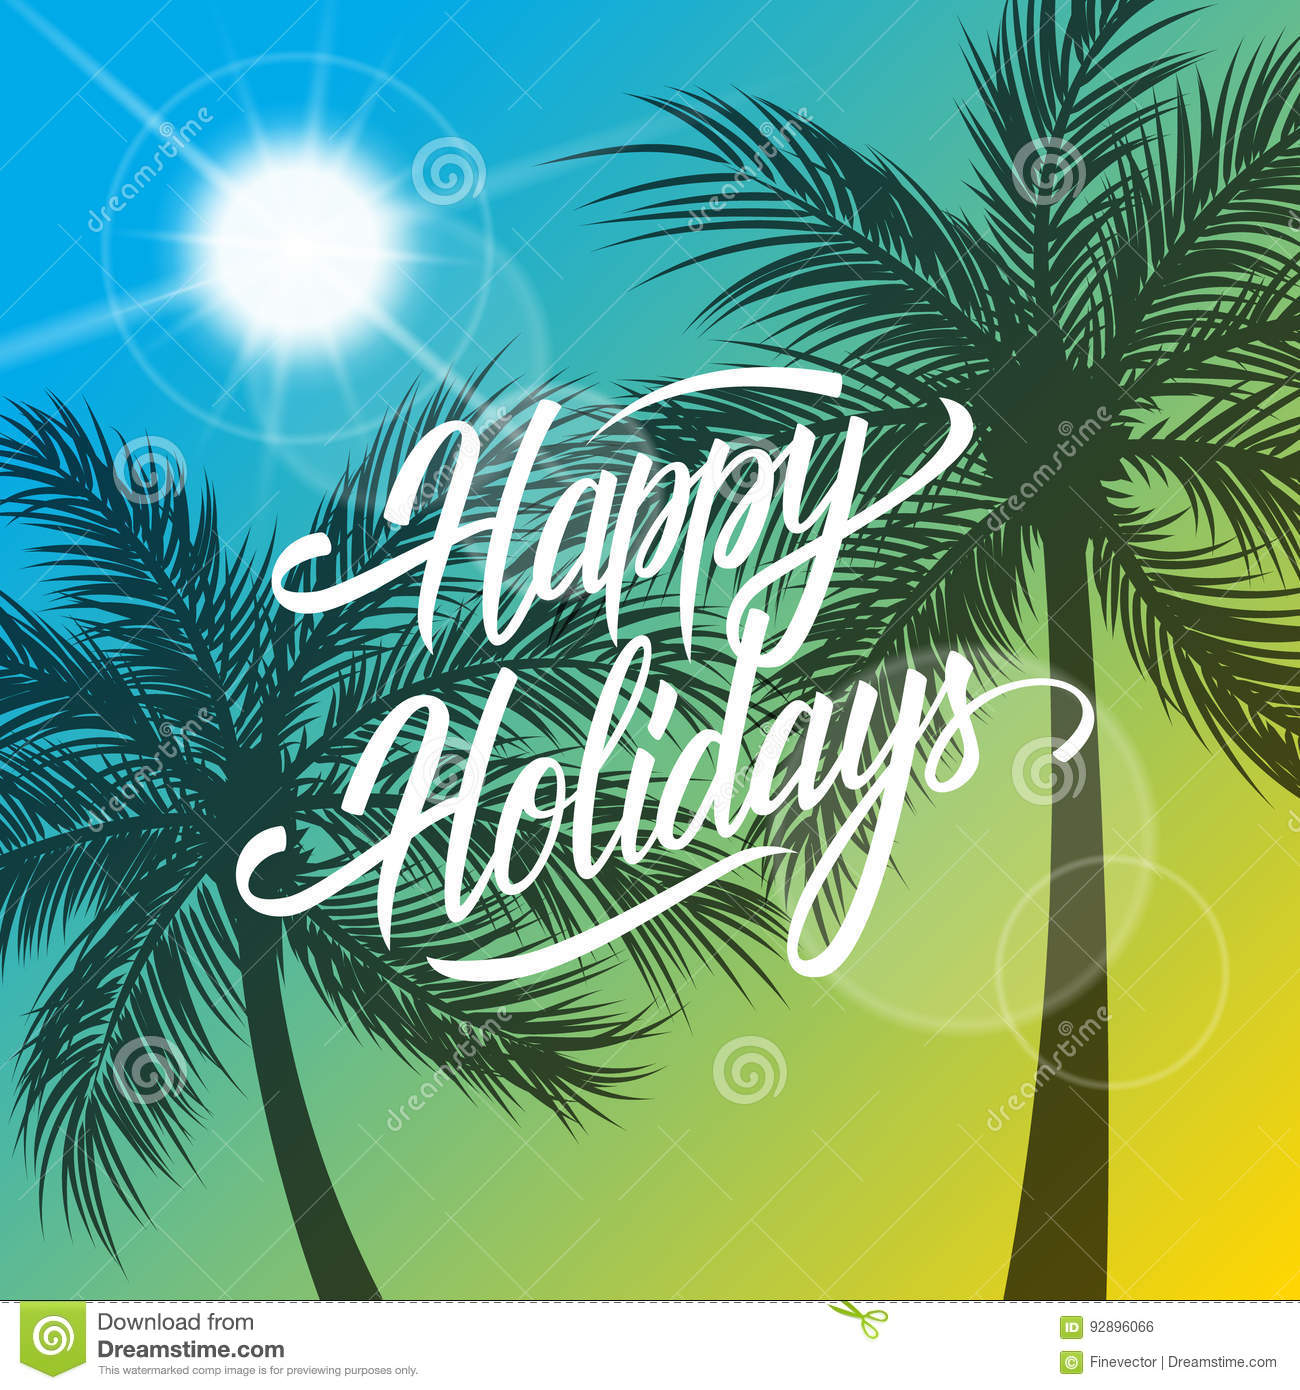 Happy holidays greeting card summertime background with hand drawn download happy holidays greeting card summertime background with hand drawn lettering text design and palm m4hsunfo